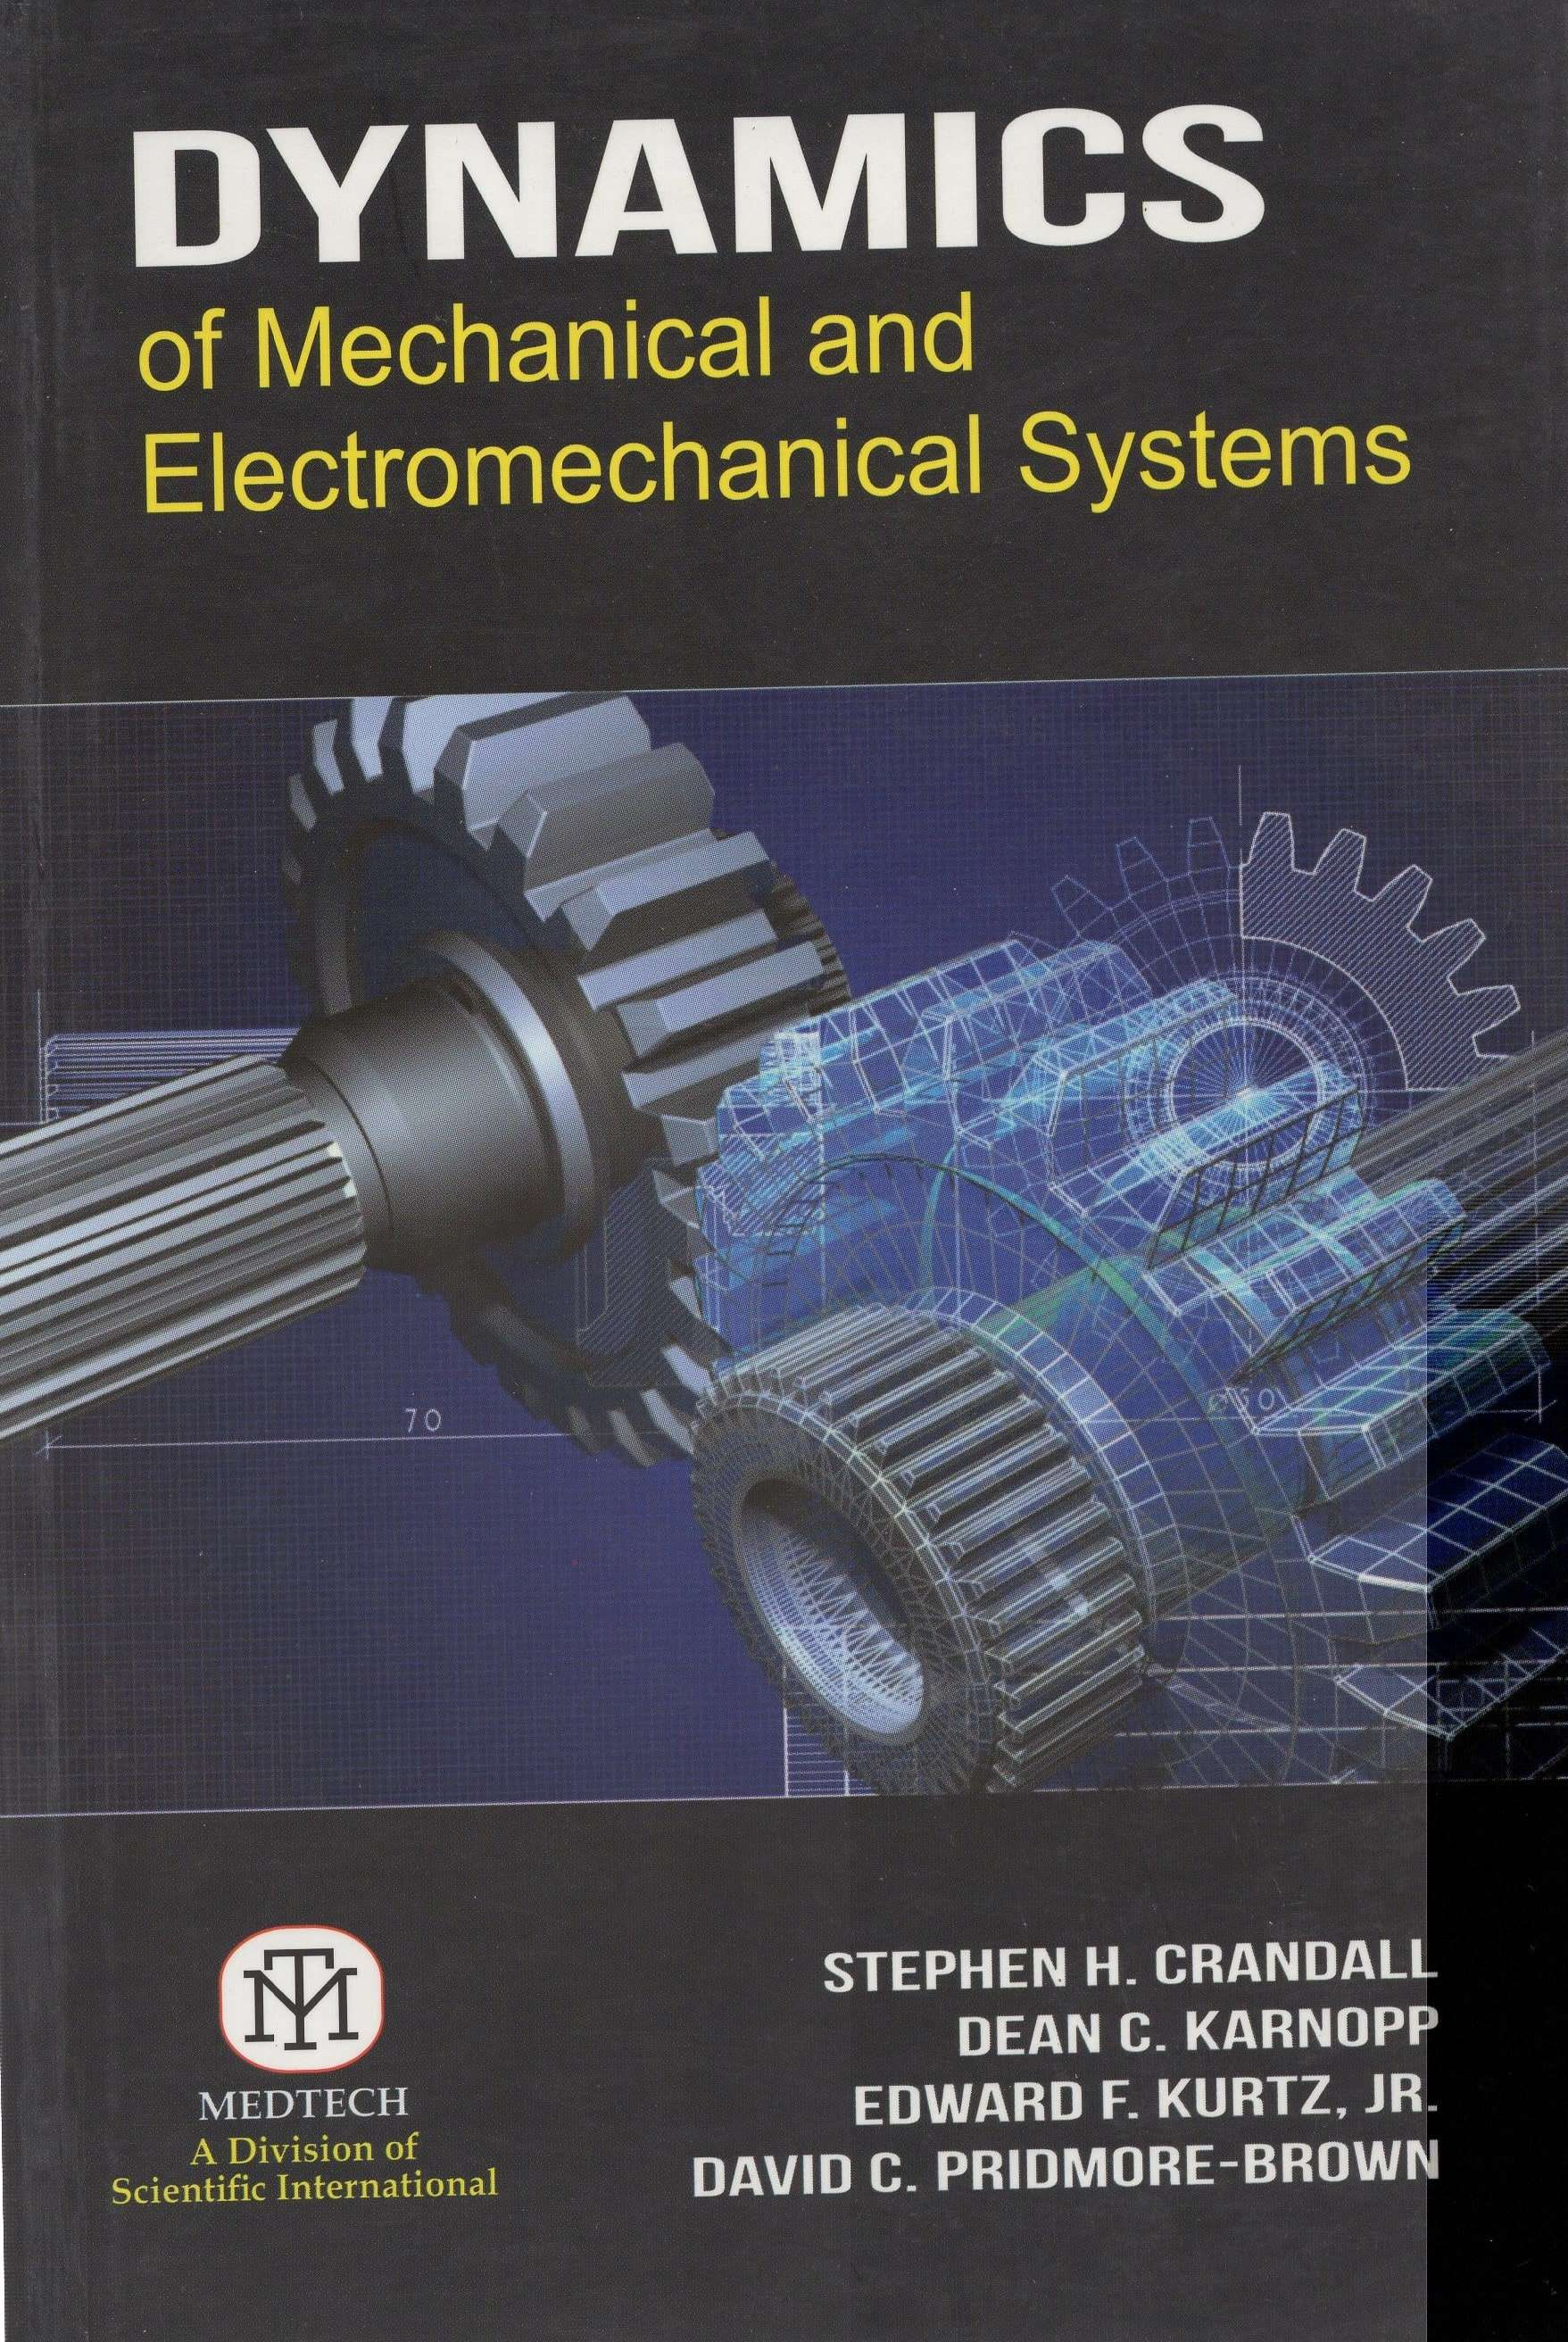 Dynamics of Mechanical and Electromechanical Systems